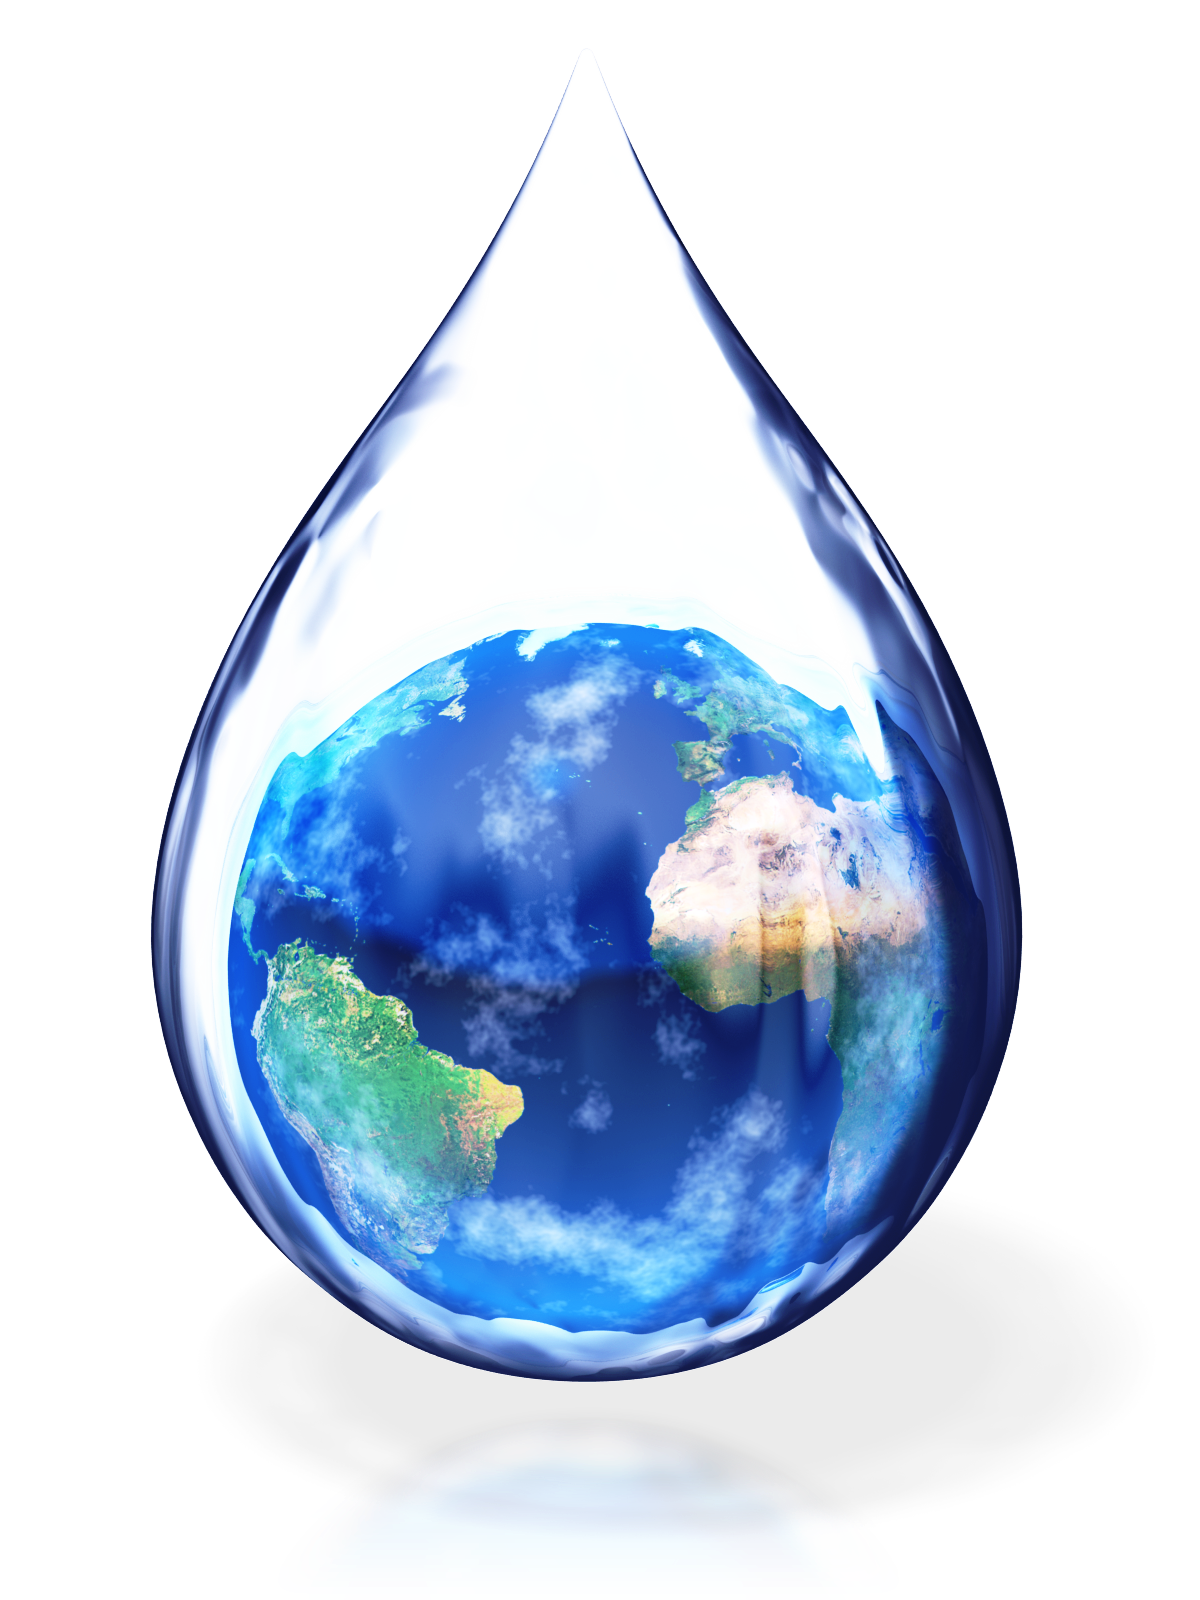 Save aztec recreation earthwaterdrop. Planets clipart water